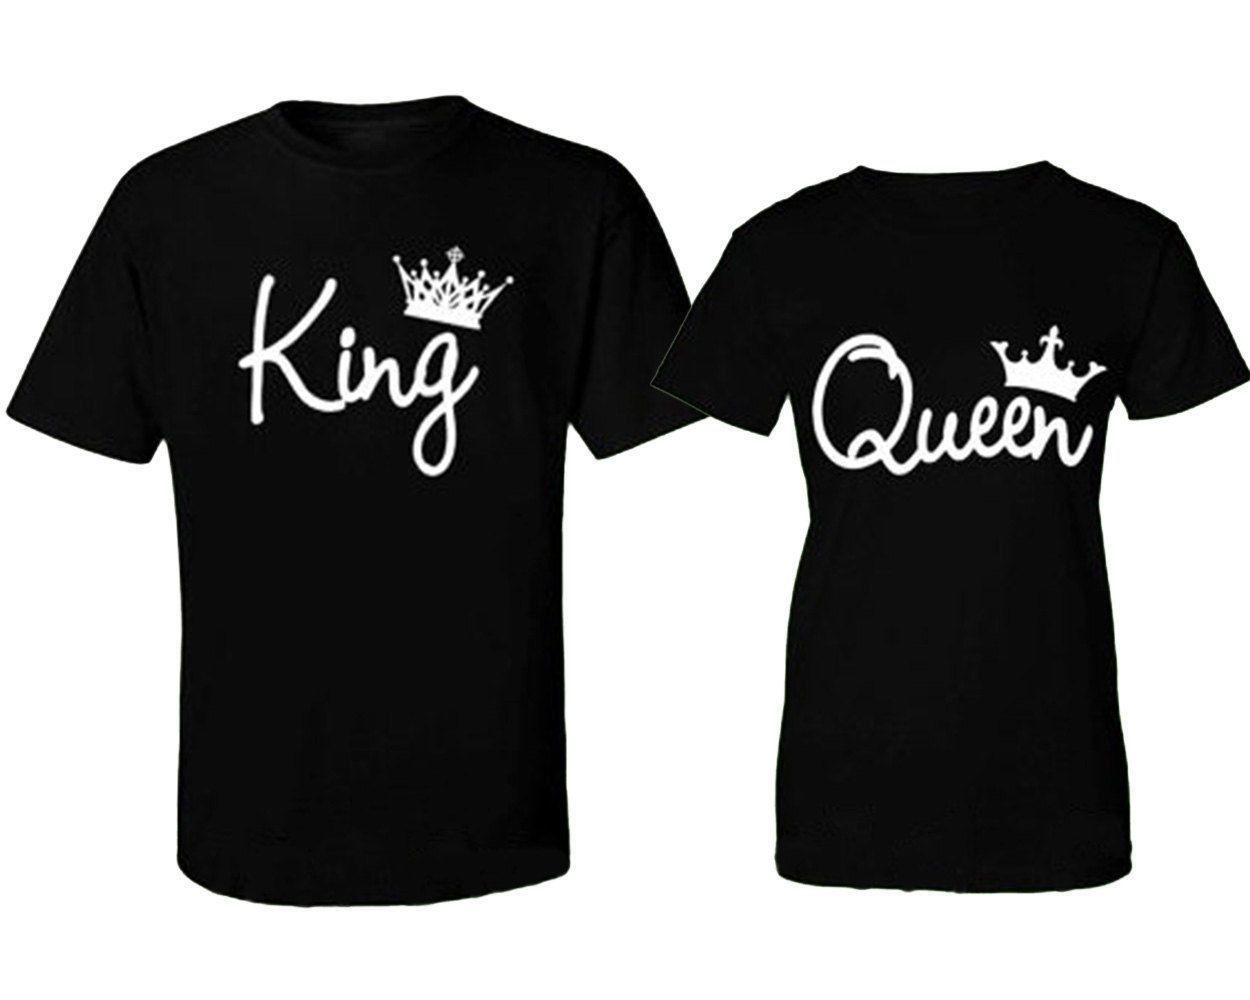 d96b40f1e690 Couple T-Shirt The King and His Queen Love Matching Shirts Couple ...